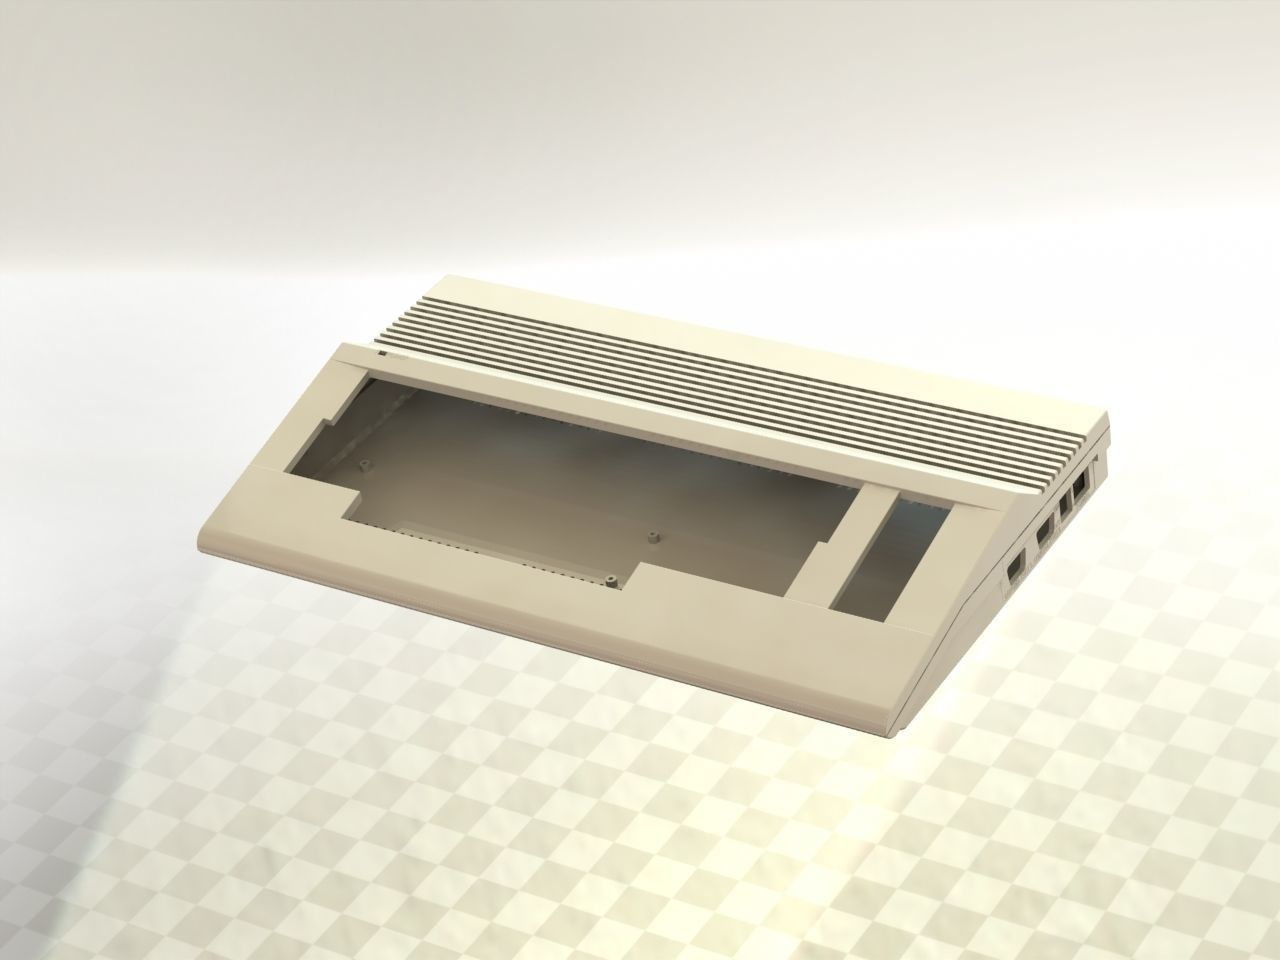 Commodore 64 Enclosure